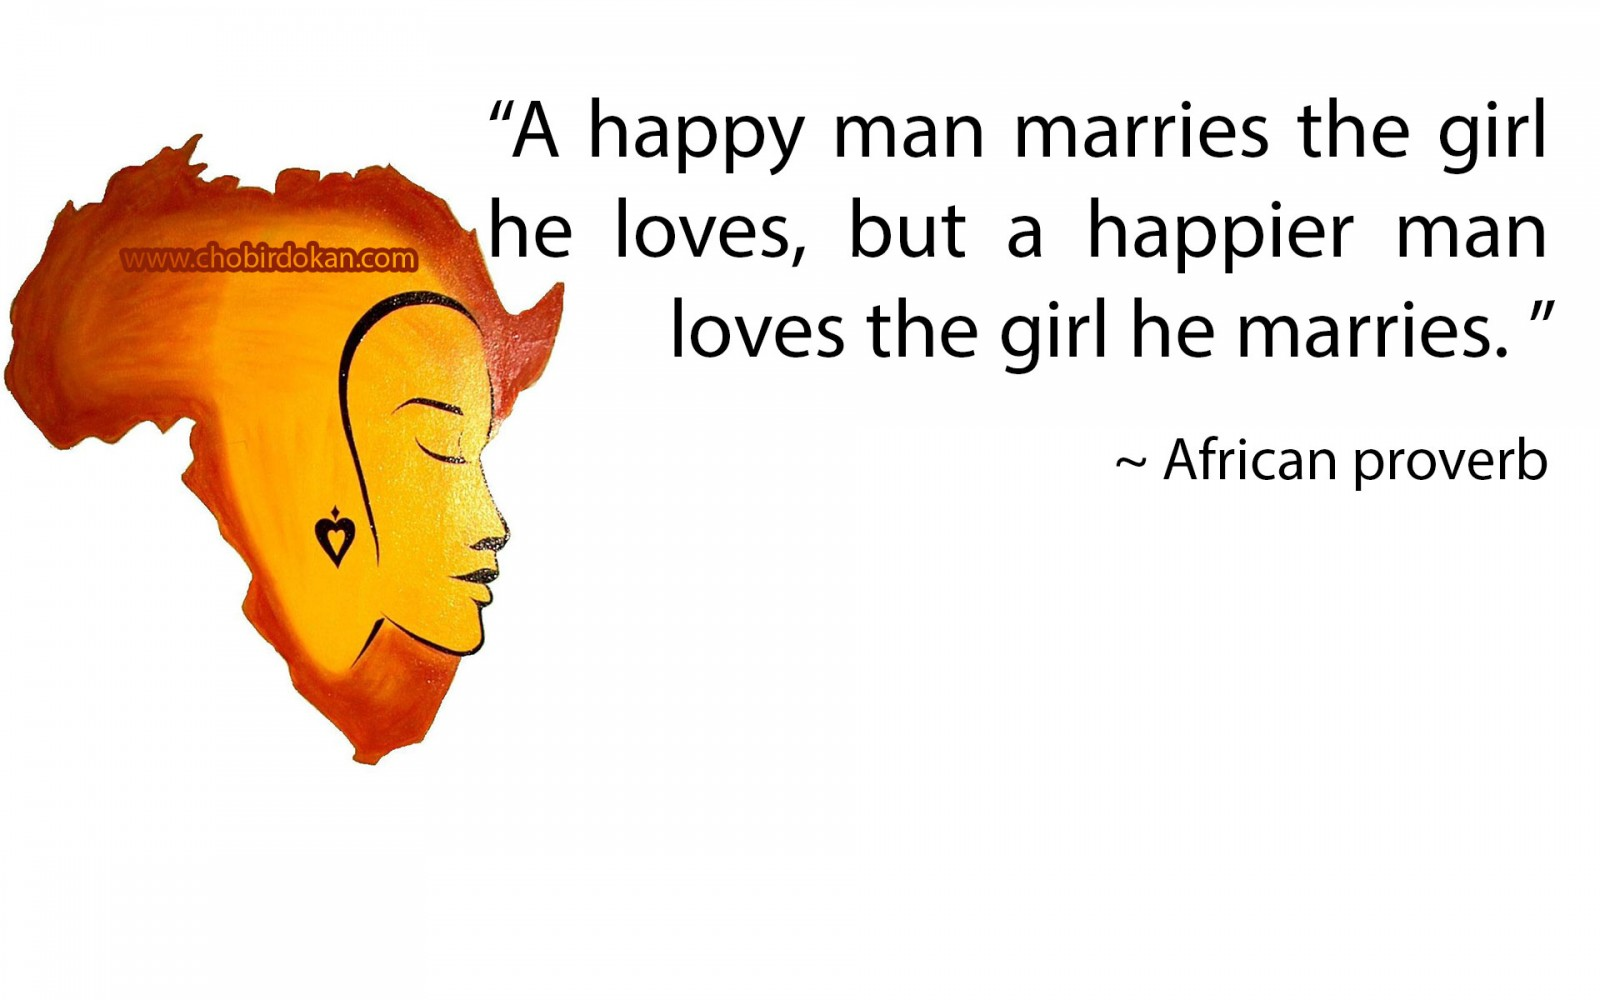 the symbolism of african proverbs Find african proverbs lesson plans and teaching resources from west african proverbs worksheets to south african proverbs videos, quickly find teacher-reviewed educational resources.